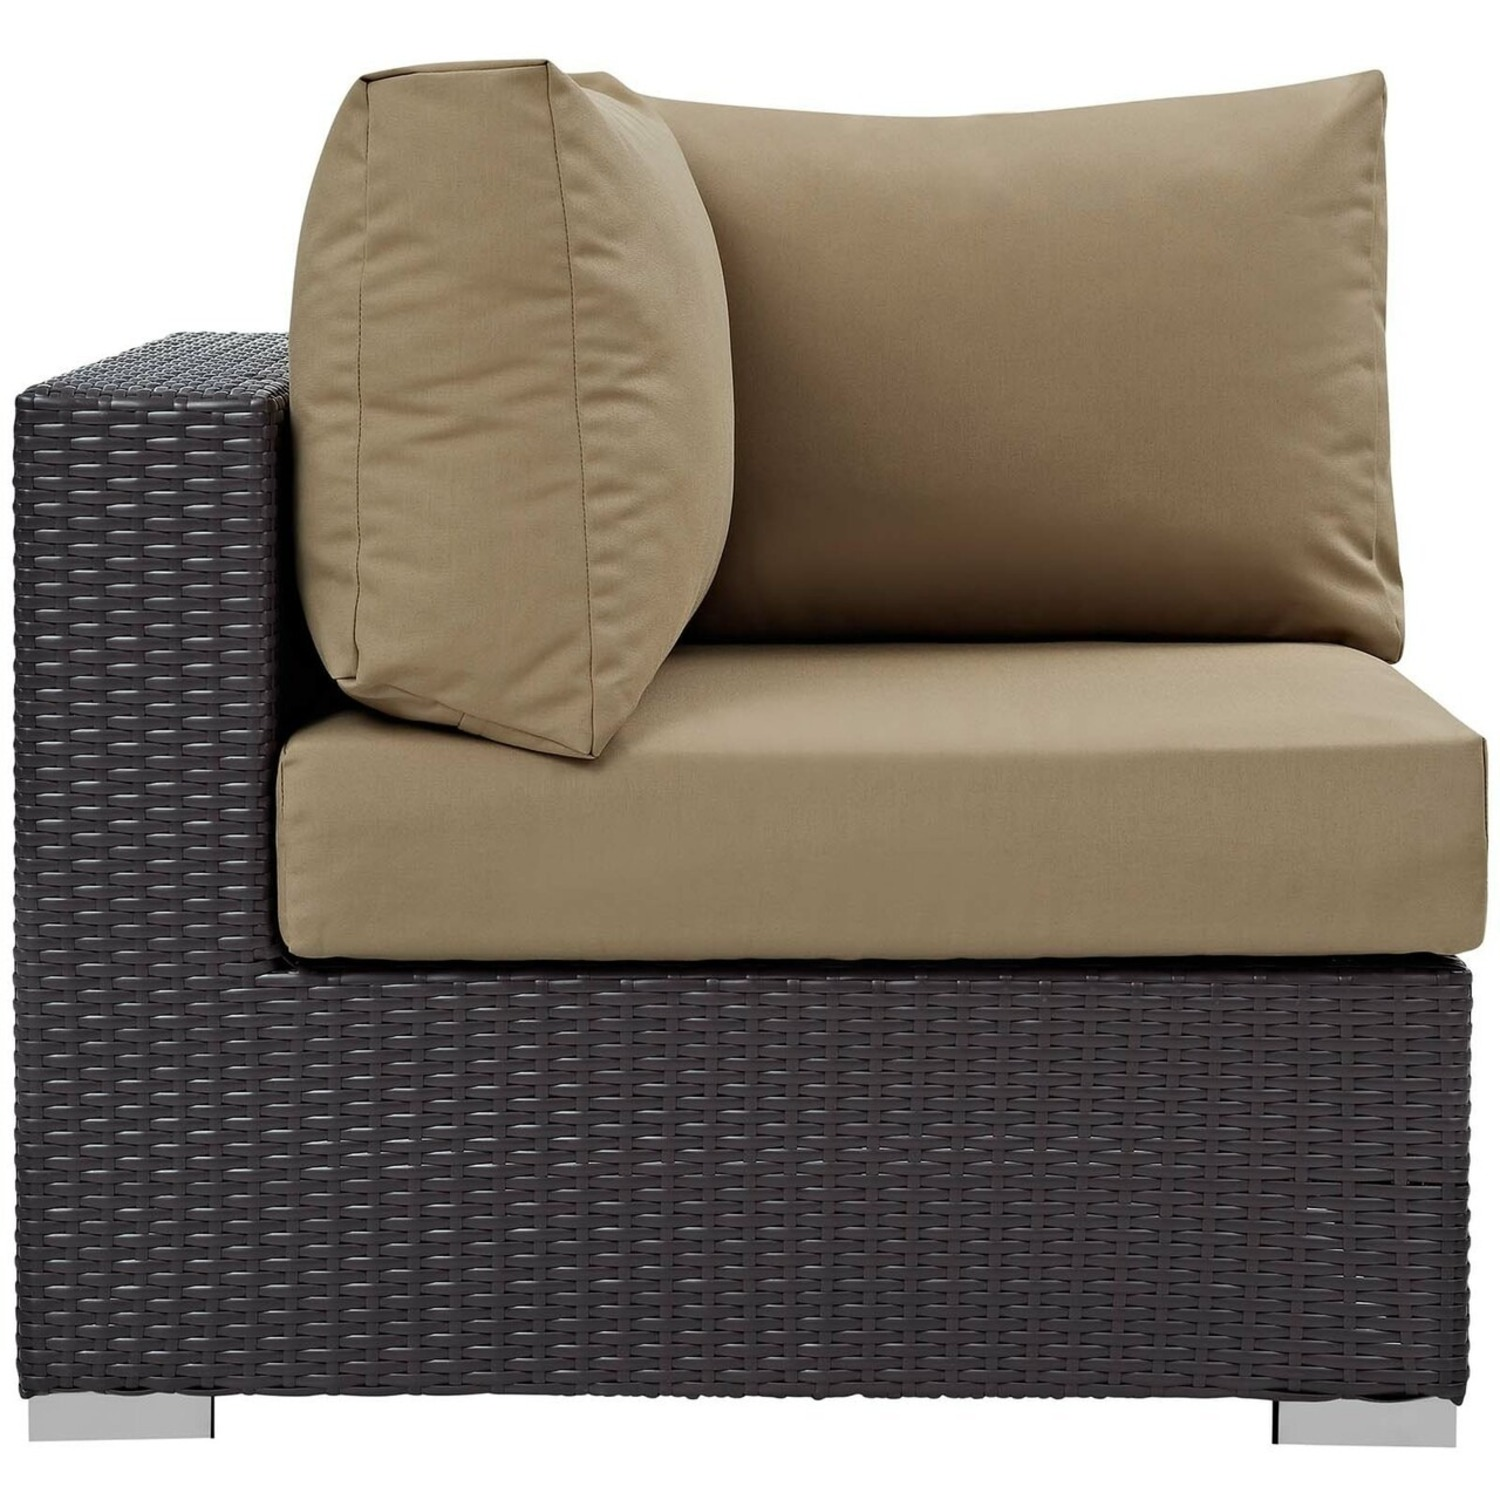 5-Piece Outdoor Sectional In Mocha Fabric Finish - image-3